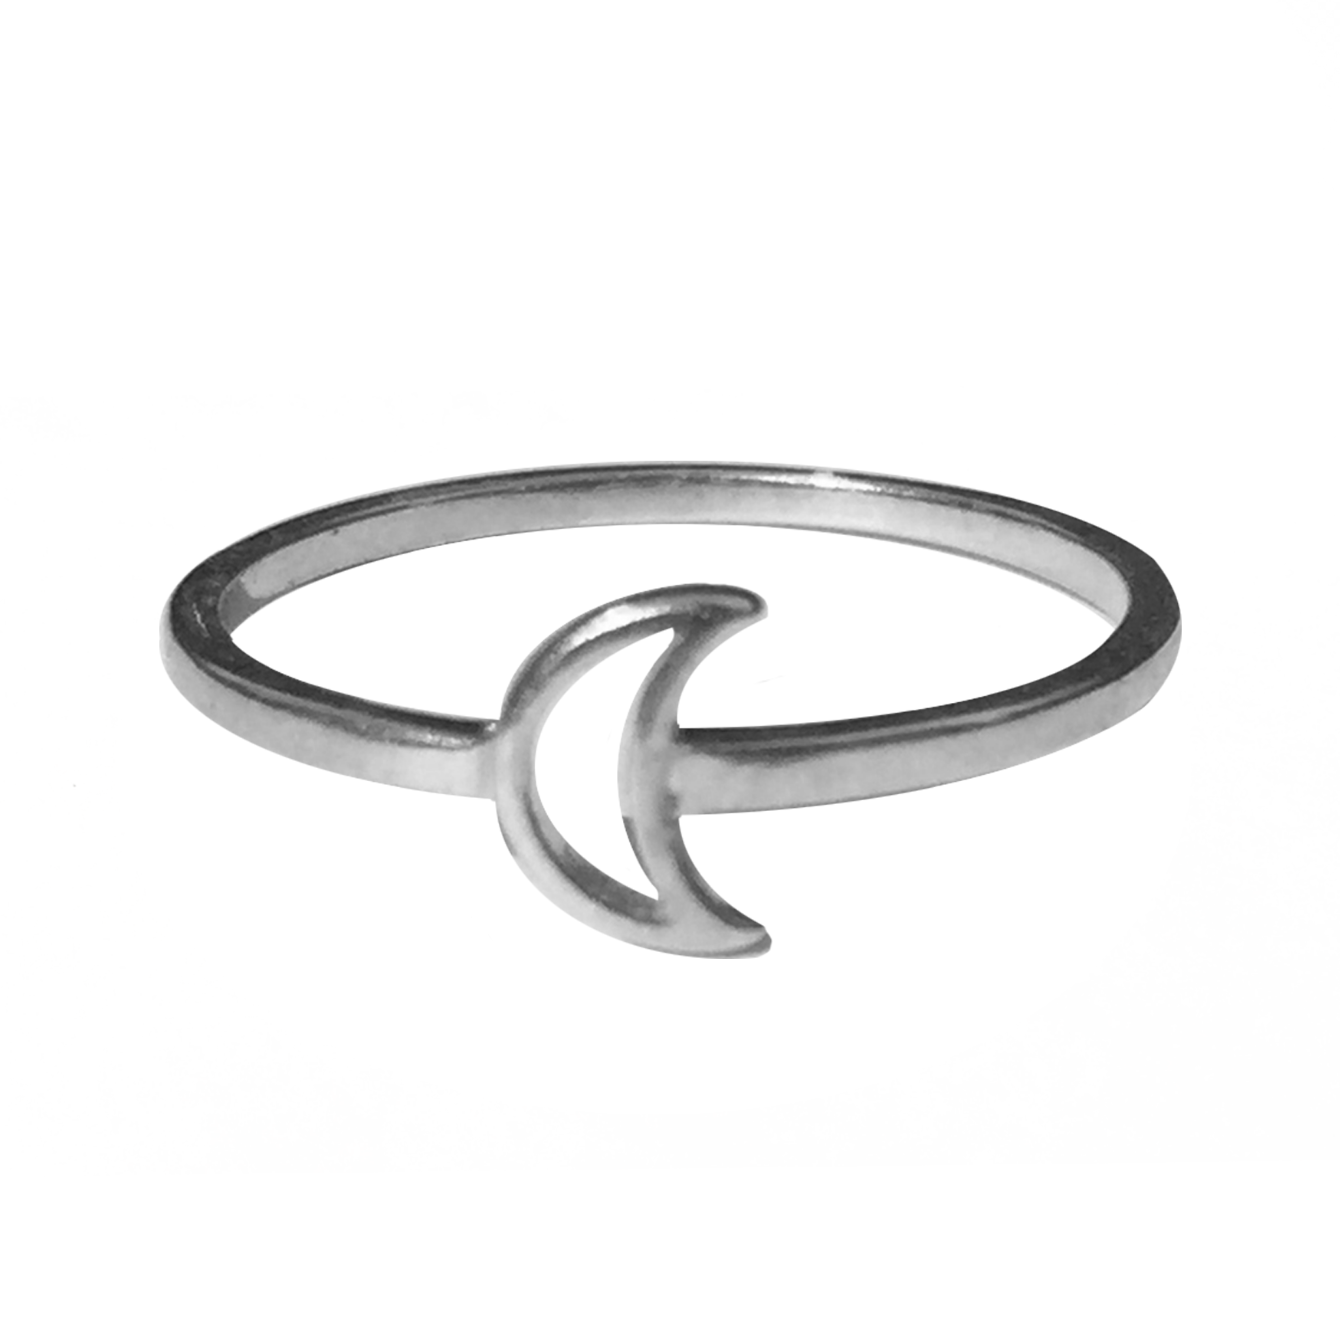 Planet Ring Moon Planet Ring Rings Engagement Rings